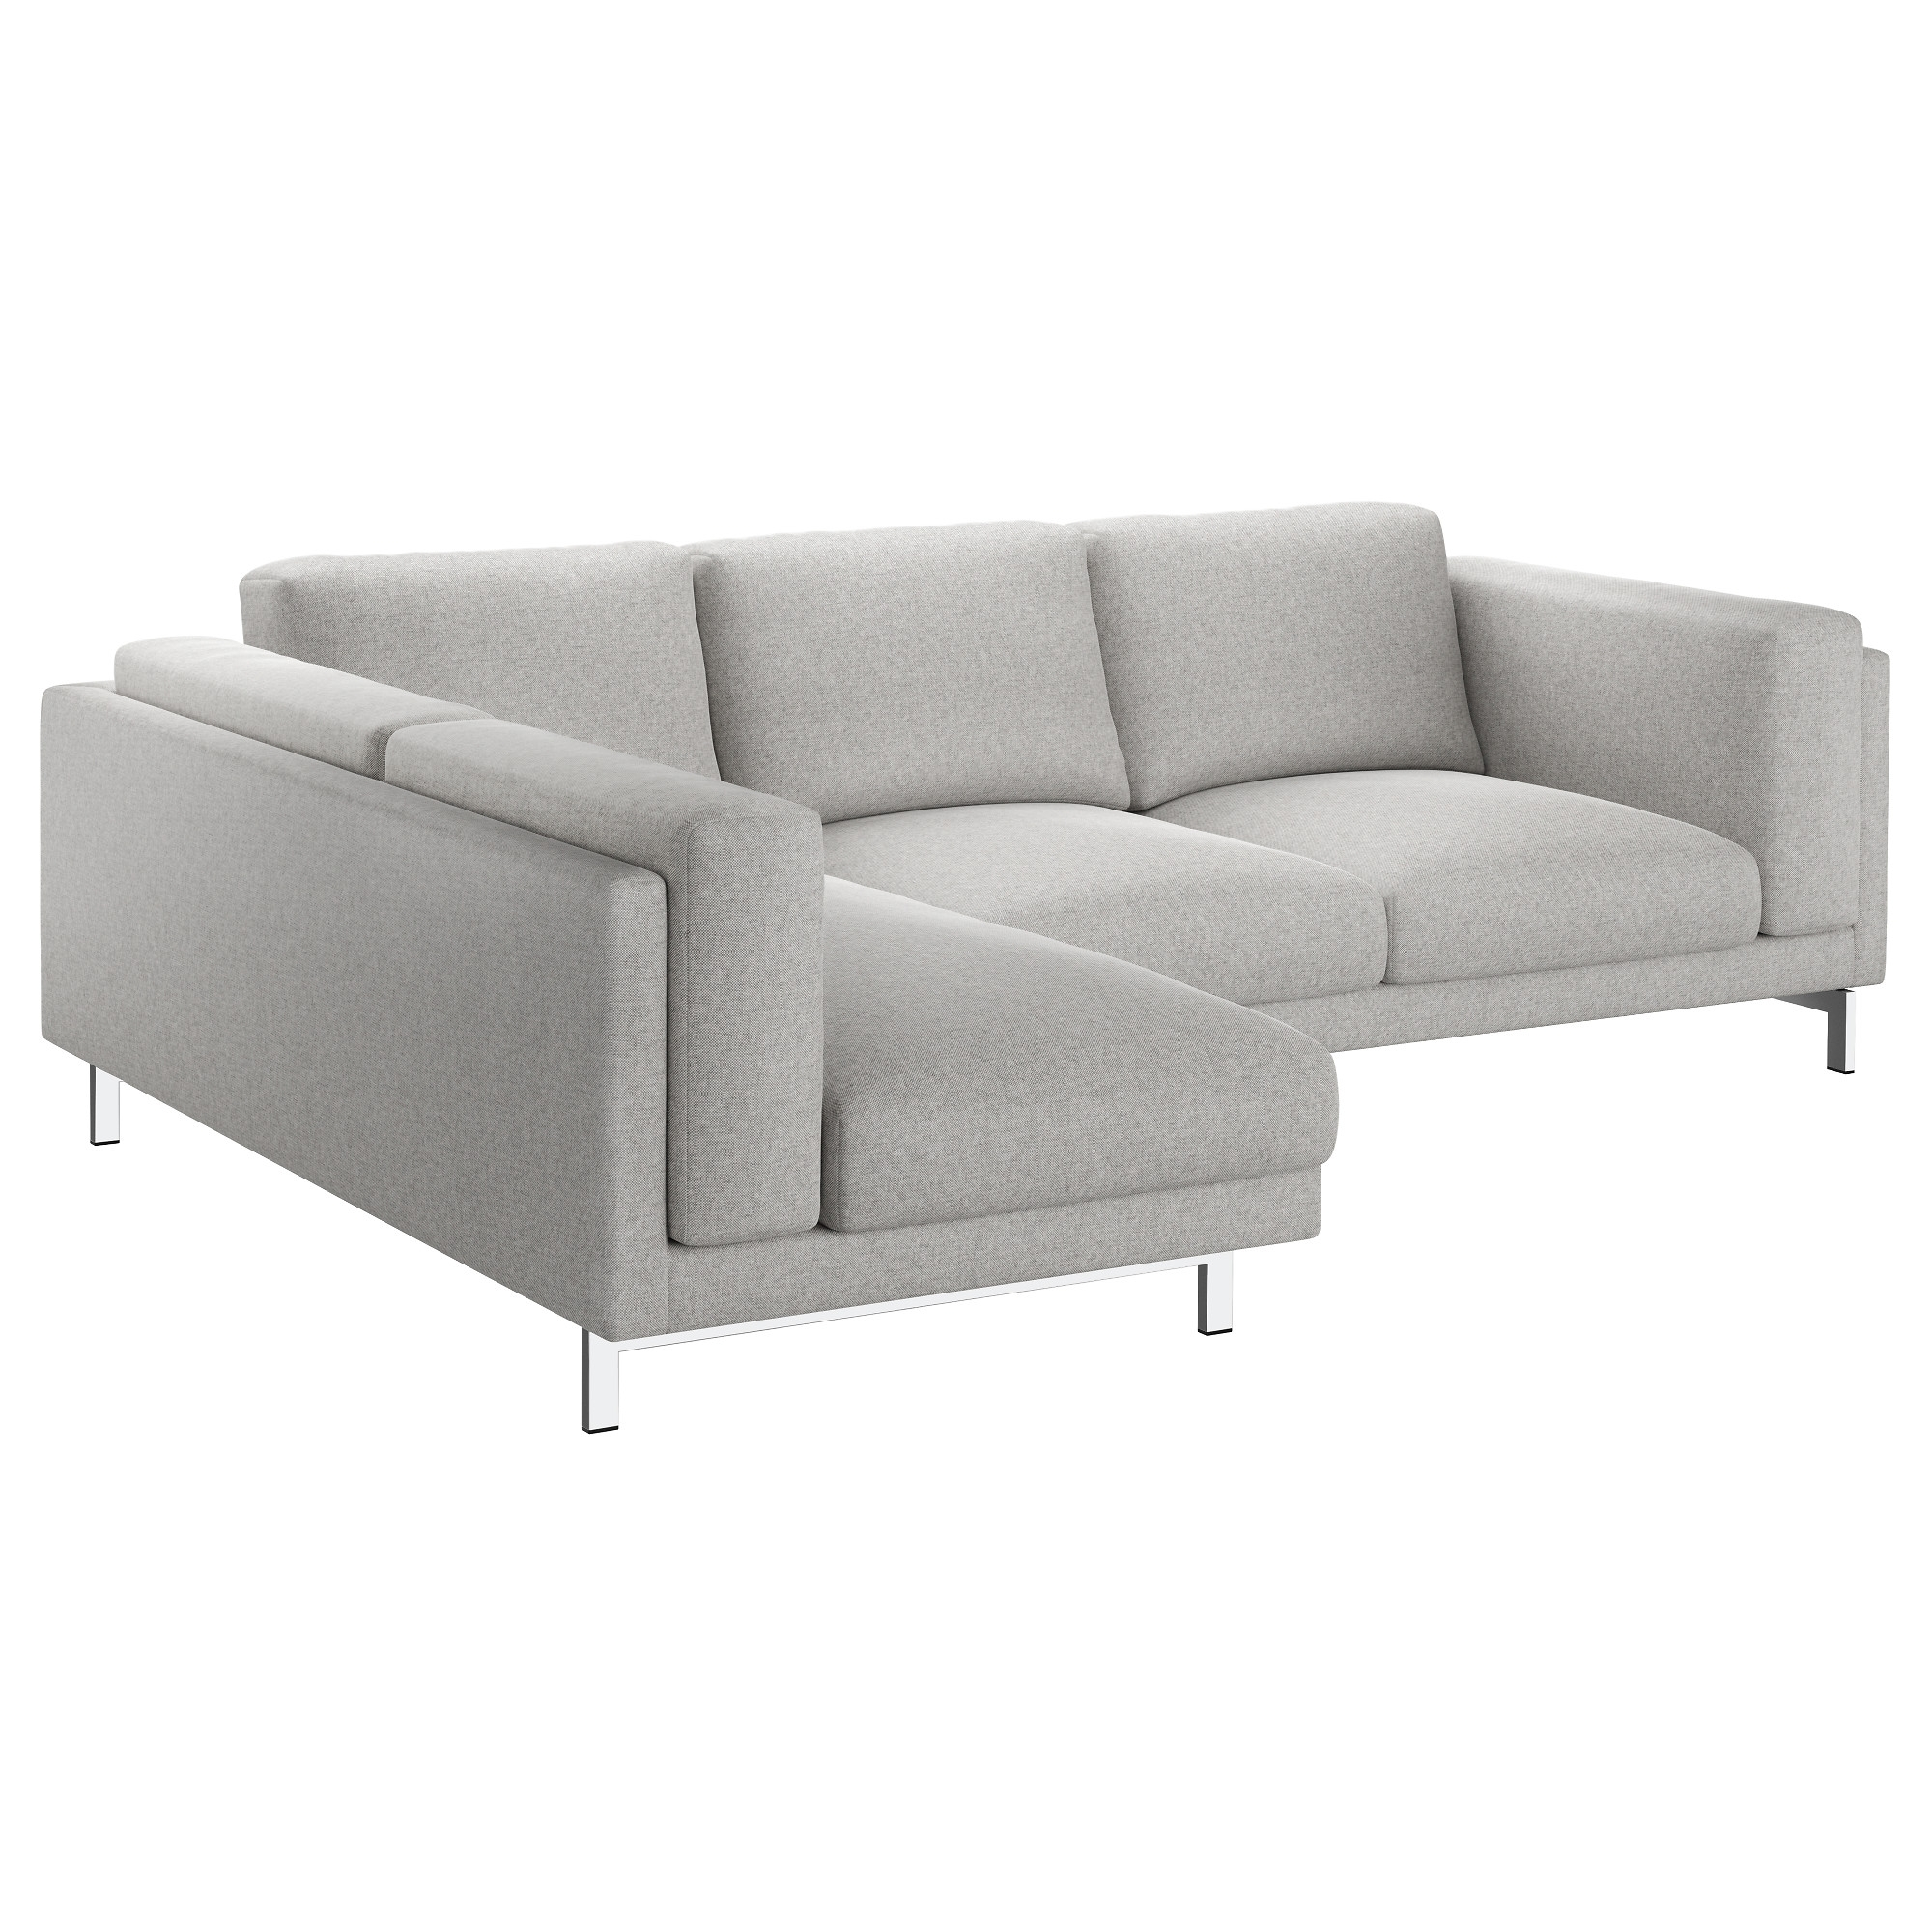 Most Current Incredible Ikea L Sofa Shaped Covers Sofas Home With Remodel 6 Regarding Ikea Small Sofas (View 12 of 20)